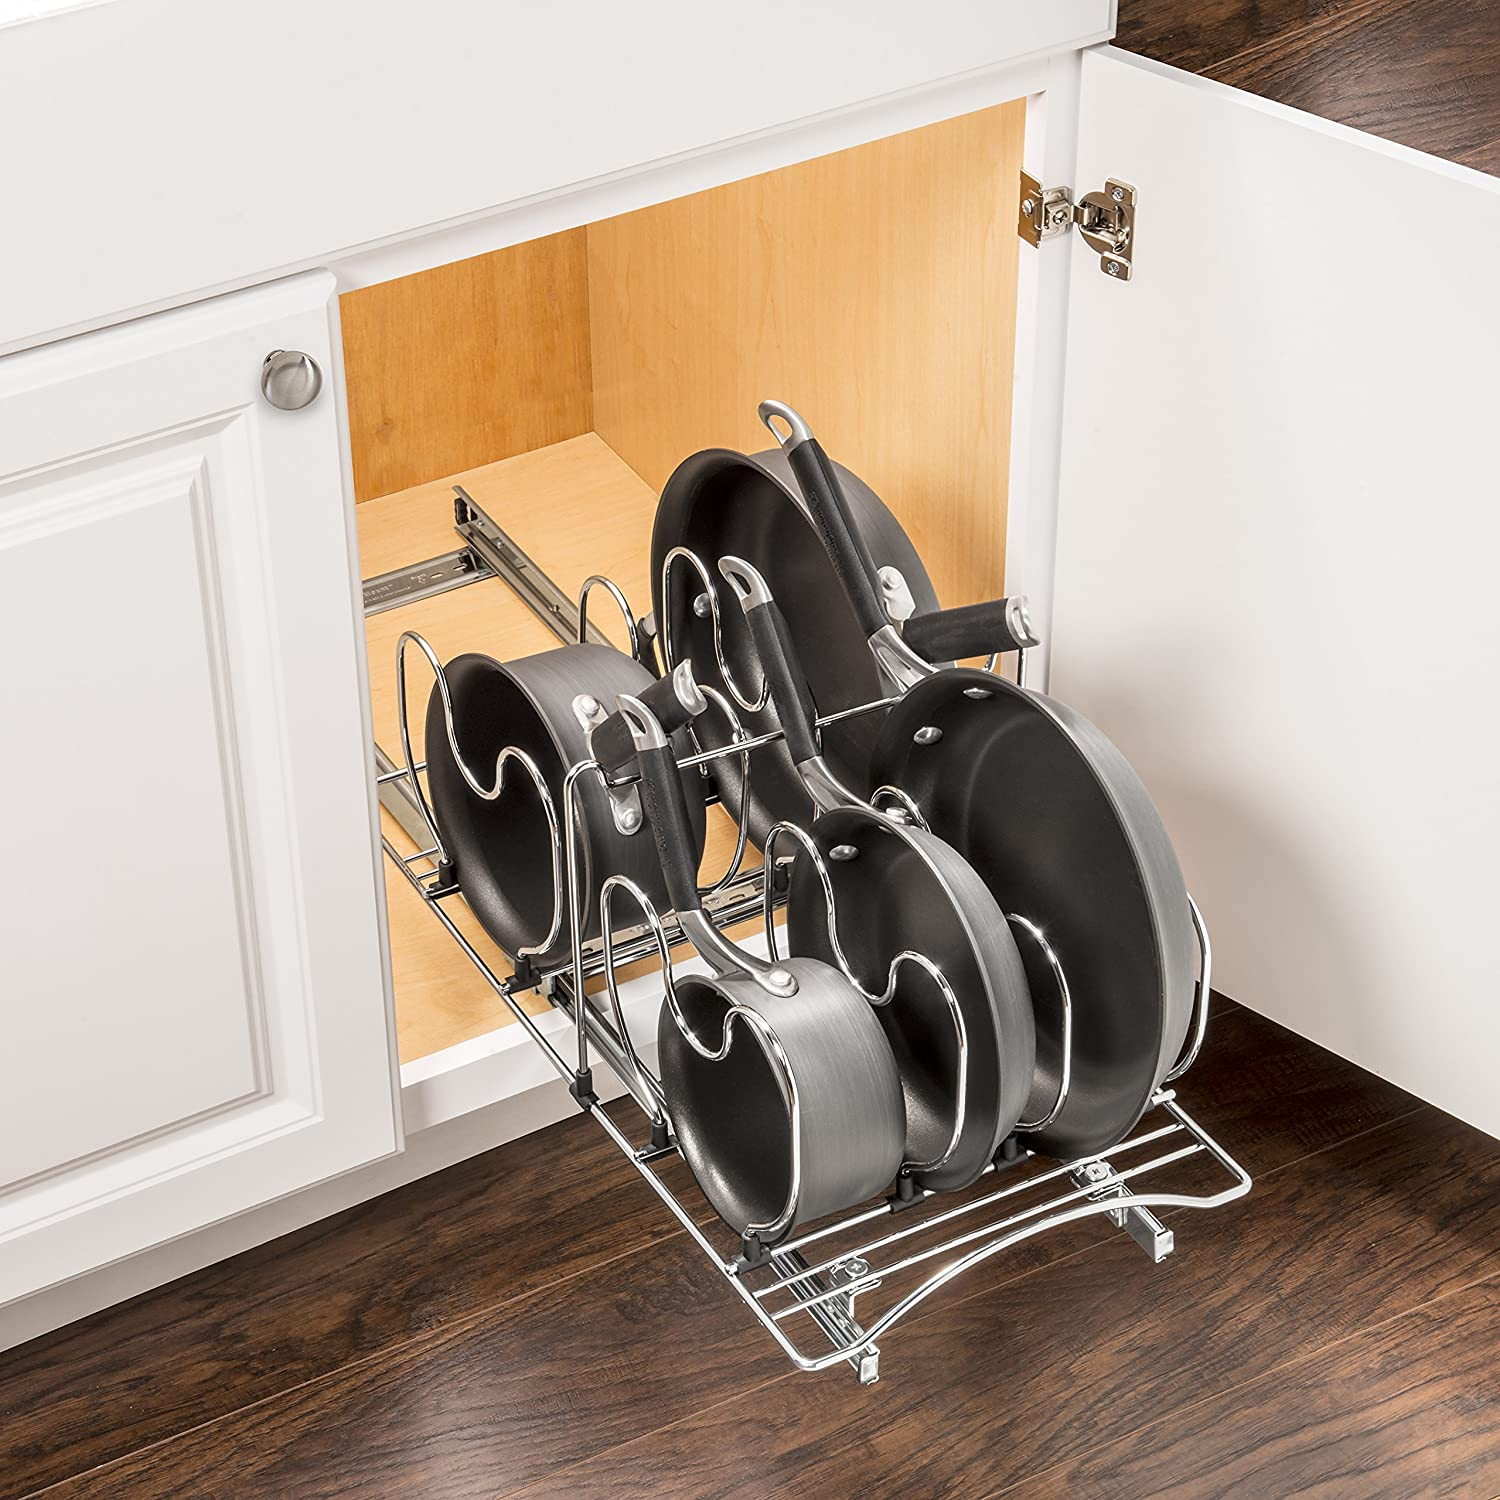 Lynk roll out under sink cabinet organizer pull out two tier sliding - Amazon Com Lynk Professional Roll Out Cookware Organizer Pull Out Under Cabinet Sliding Rack Chrome